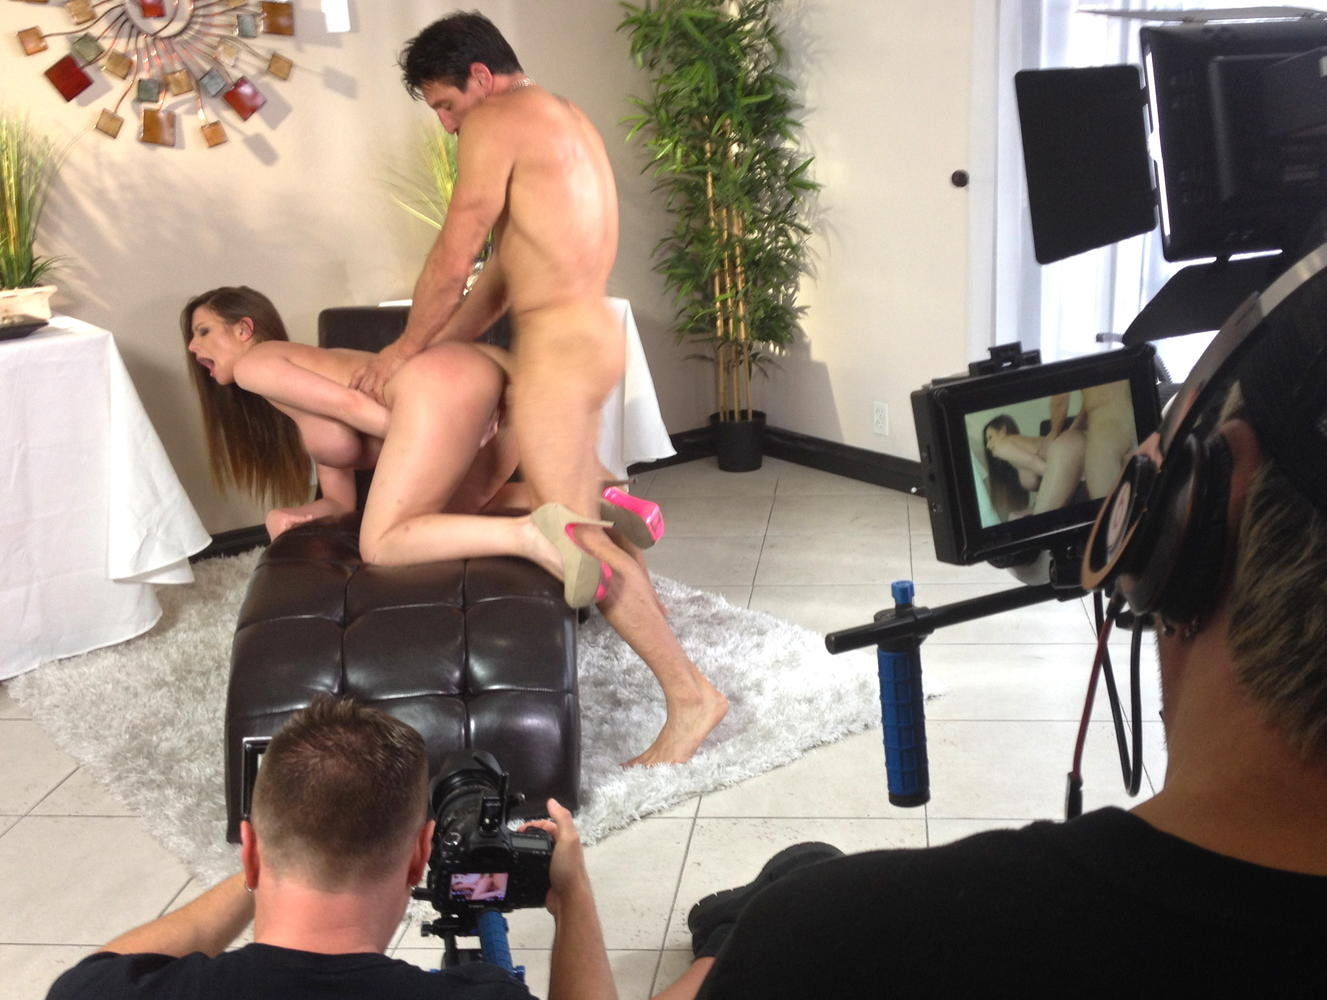 Behind The Scenes Of A Porn Shoot 115